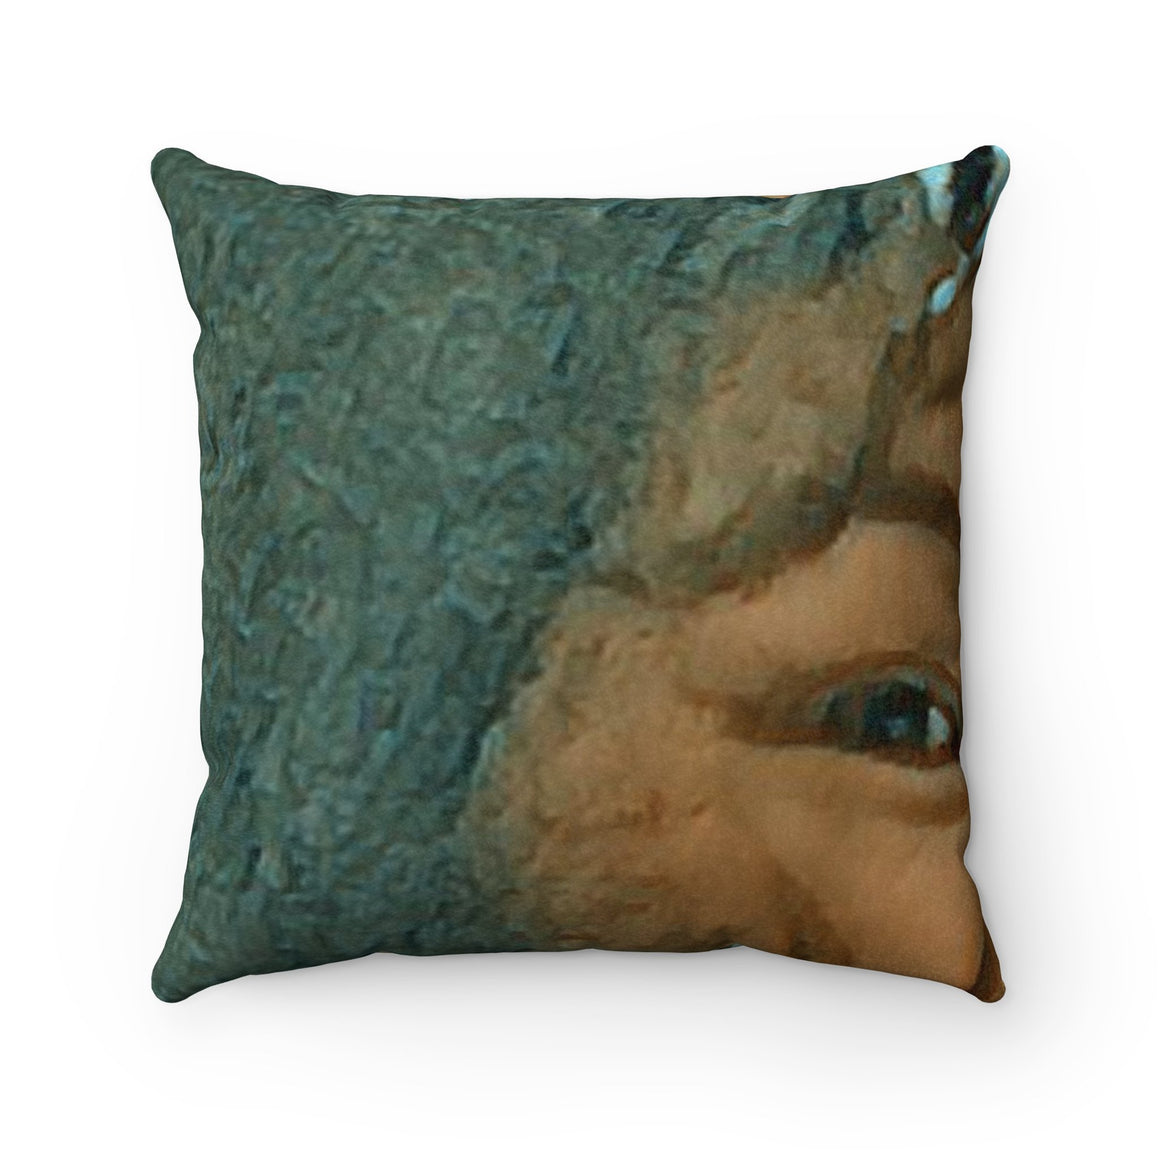 Levi Thang Vintage Face Design H Faux Suede Square Pillow Case